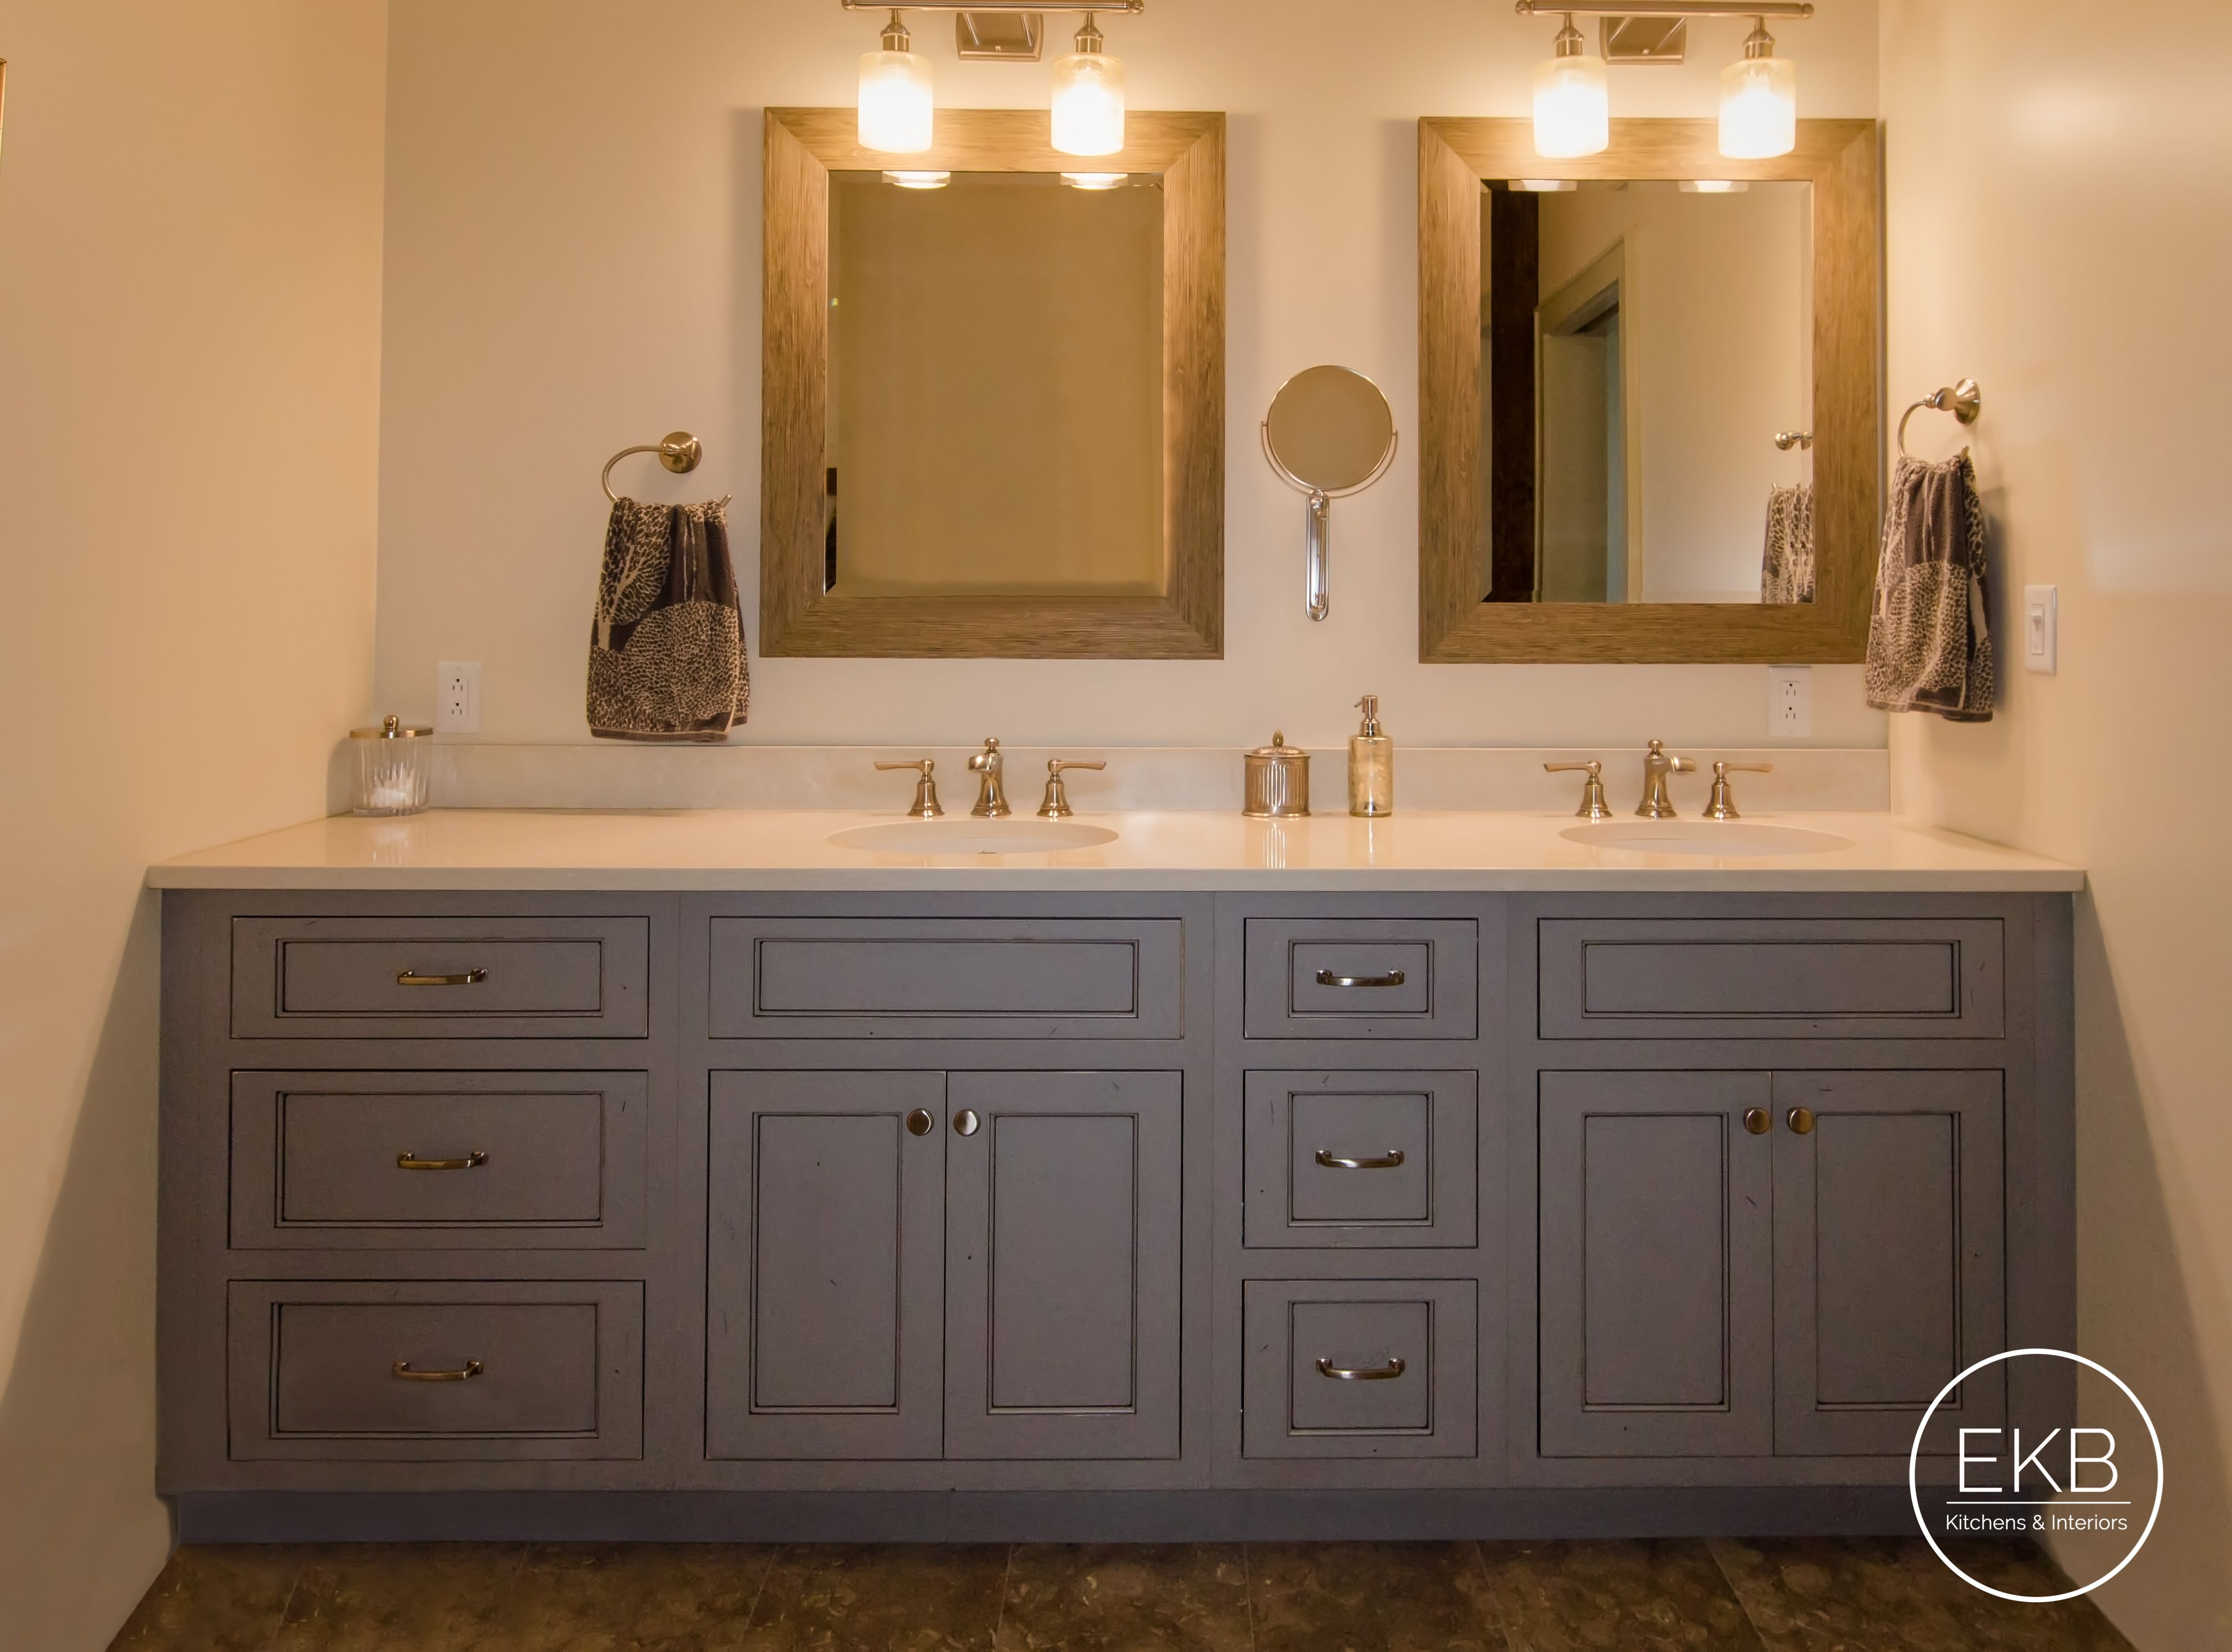 Shiloh Flush Inset Master Bath Vanities In A Dovetail Grey With Mocha Glaze And Distressing Master Bath Vanity Installing Kitchen Cabinets Kitchen Remodel